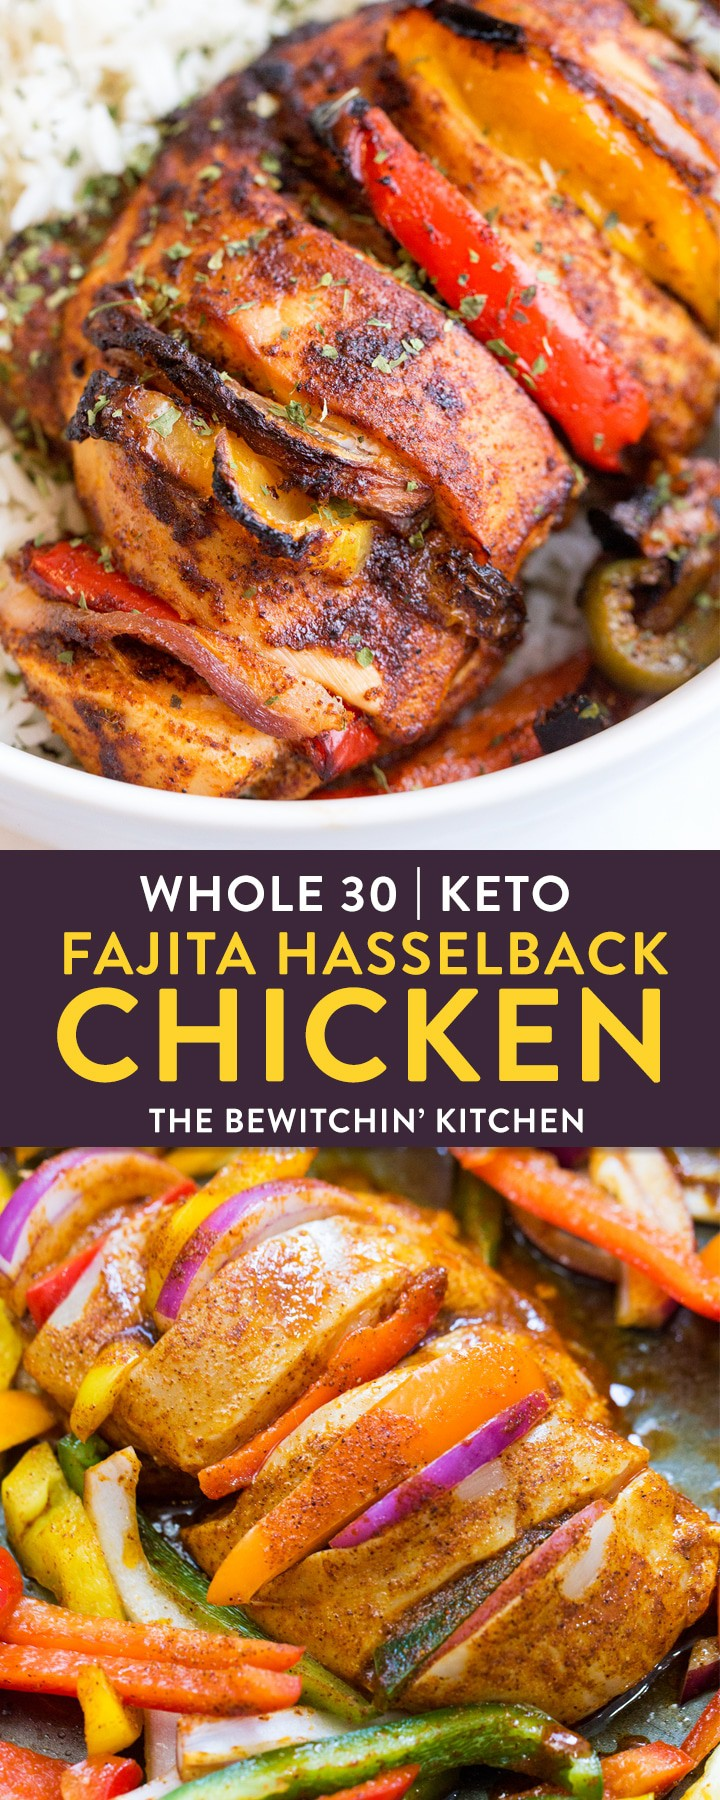 This easy whole30 recipe for fajita hasselback chicken is a clean eating must do! A healthy, high protein, low carb alternative to a dinner favorite is always good in my books. A twist on fajitas with the simplicity of sheet pan chicken. This falls under keto recipes, 21 Day Fix, 80 Day Obsession, and paleo recipe approved. AD #thebewitchinkitchen #whole30chickenrecipes #whole30recipes #ketorecipes #21dayfixrecipes #80dayobsessionrecipes #paleorecipes #healthychickenrecipes #cleaneatingrecipes